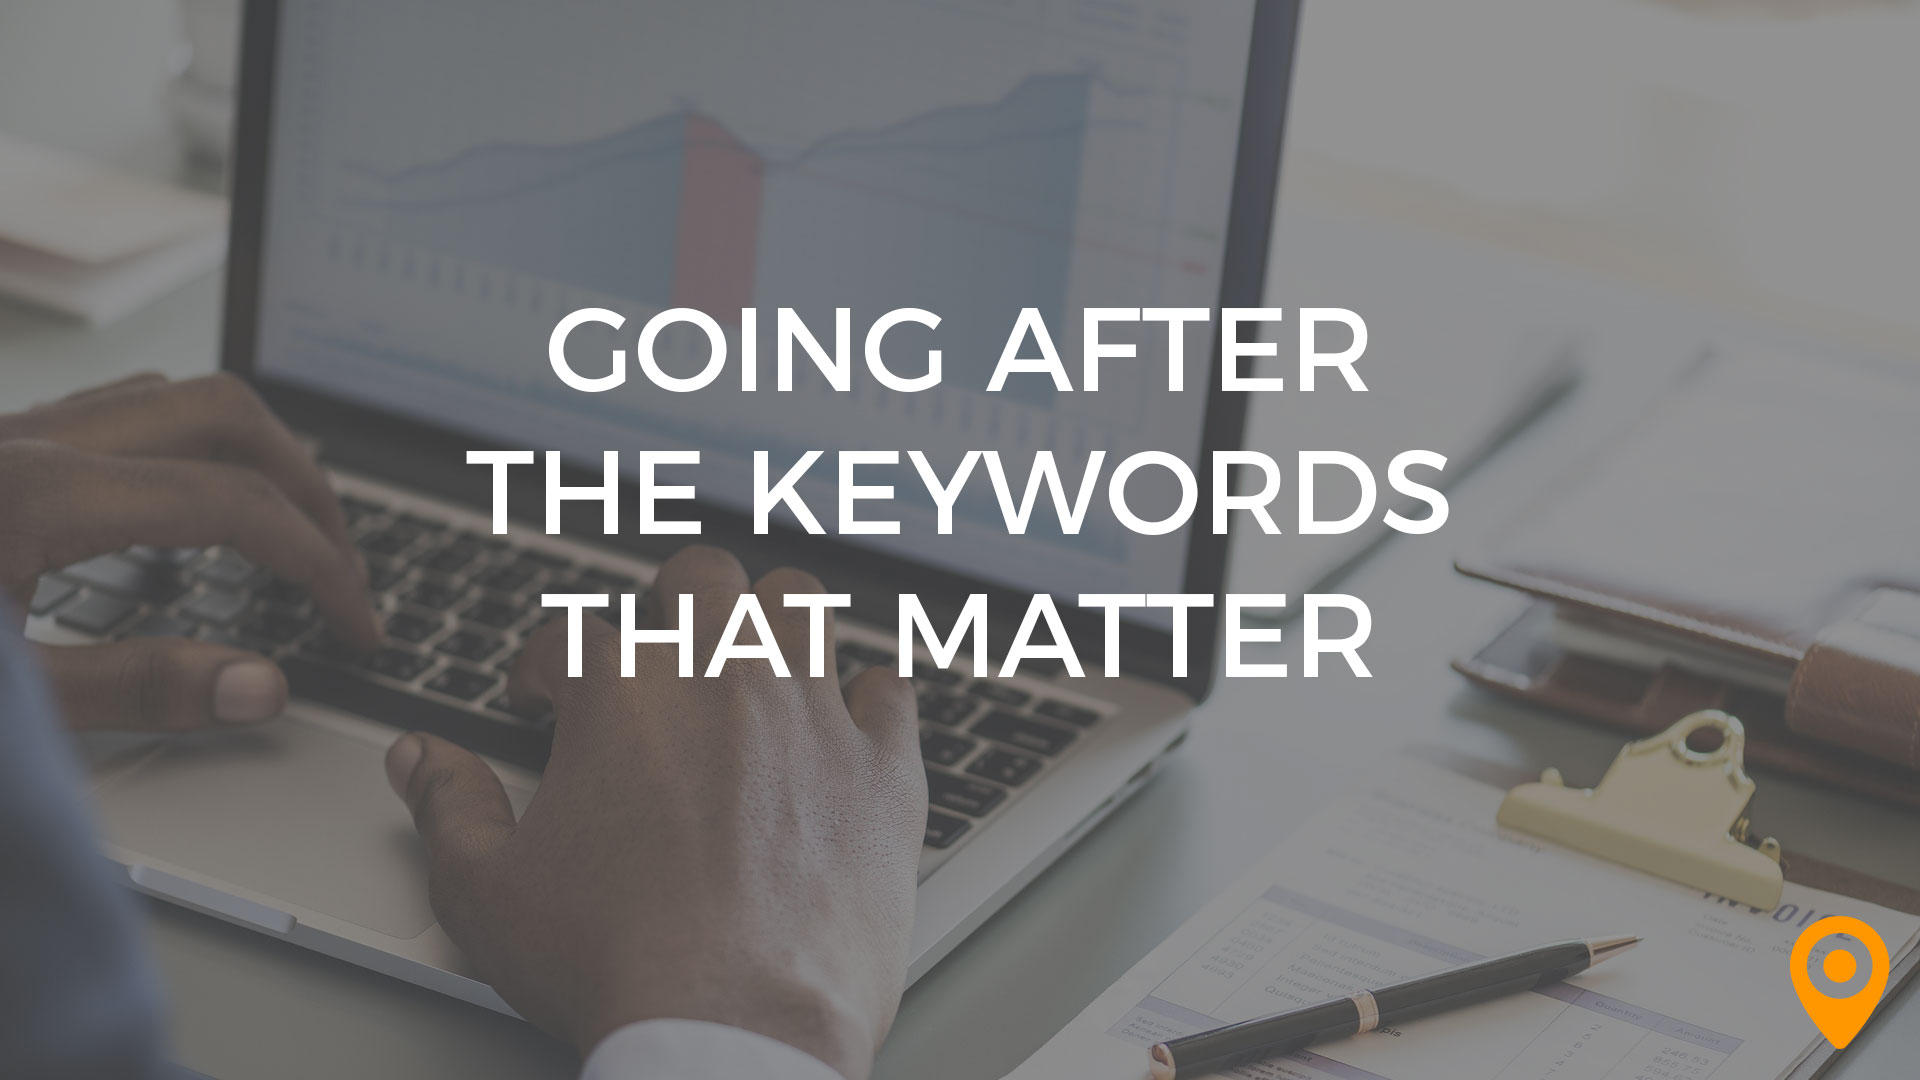 Going After the Keywords That Matter